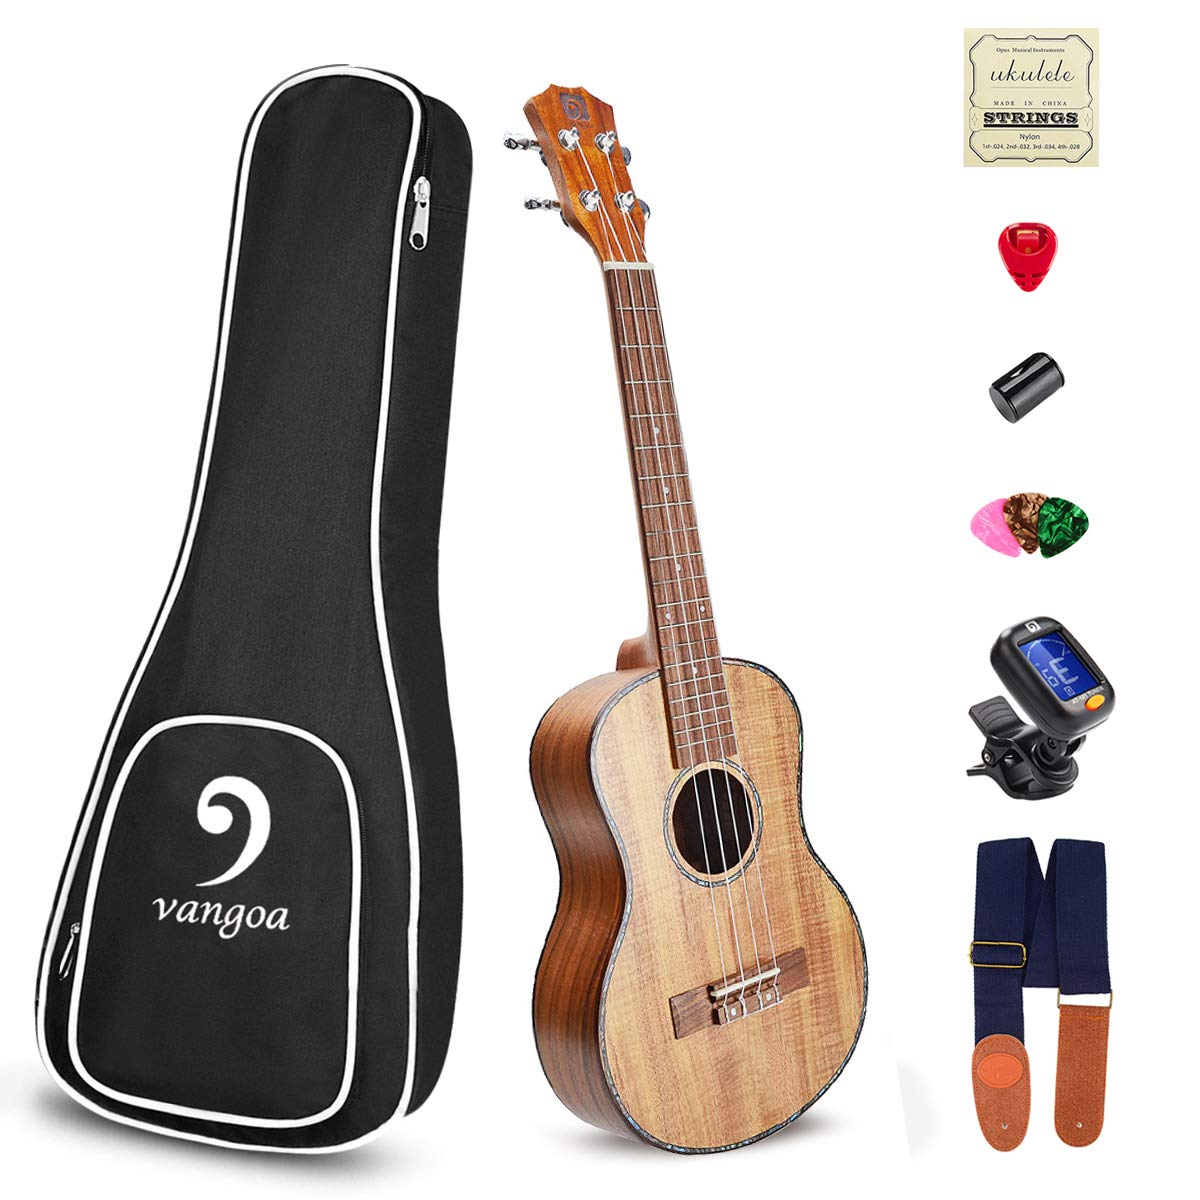 Concert Ukulele Acoustic KOA 23 Inch 4-string Ukulele Professional Vintage Ukelele with Beginner Kit, for Beginners, Kids, Starter, Amateur, by Vangoa